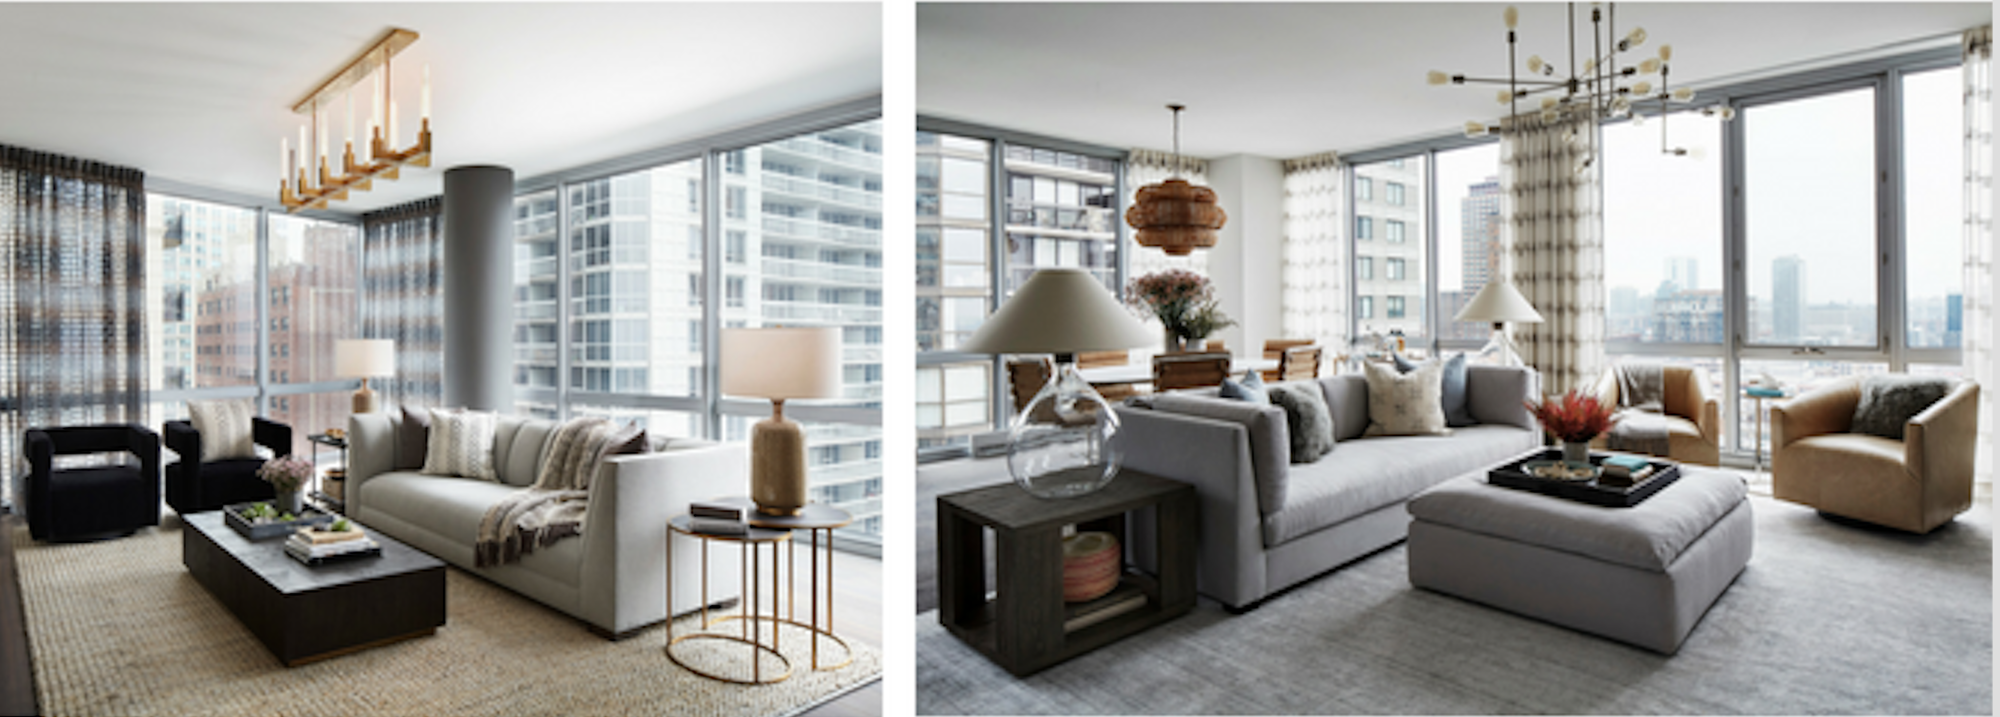 Each model apartment at 2 W. Delaware Pl. showcases possibilities, such as the two different living areas. (Image: Jessica Lagrange Interiors)